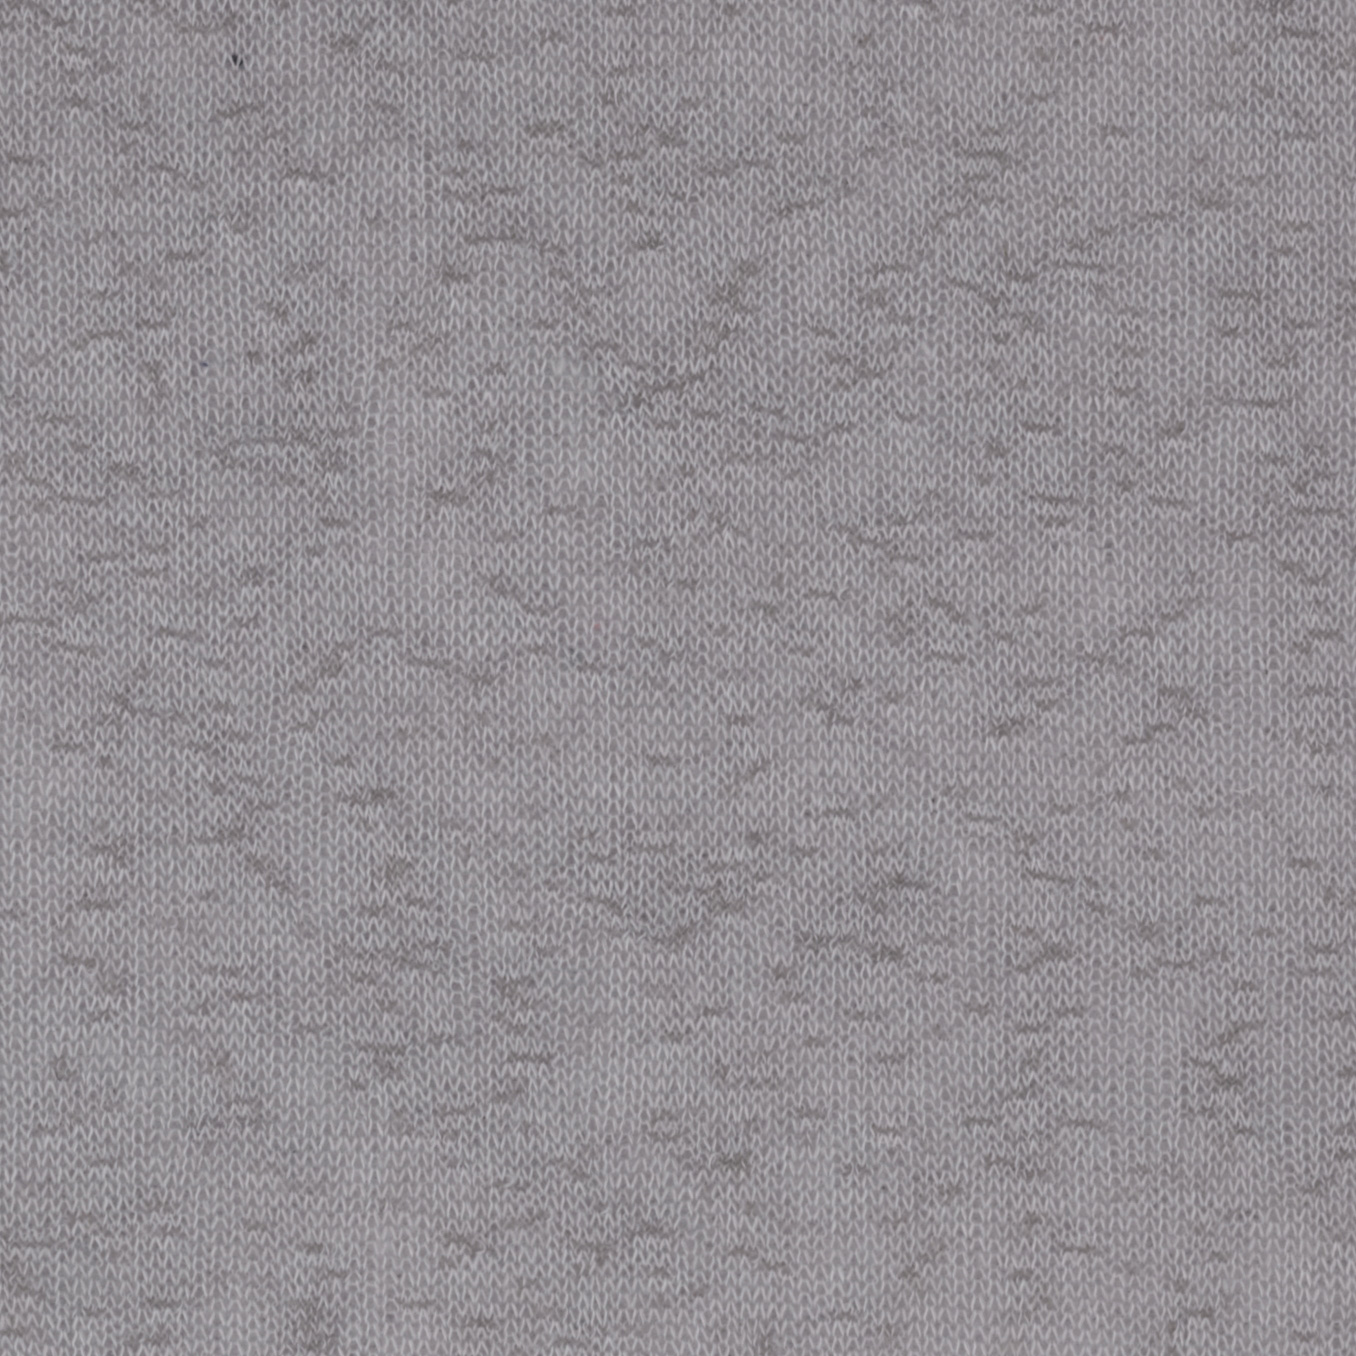 Stretch Tissue Slub Hatchi Knit Silver Fabric